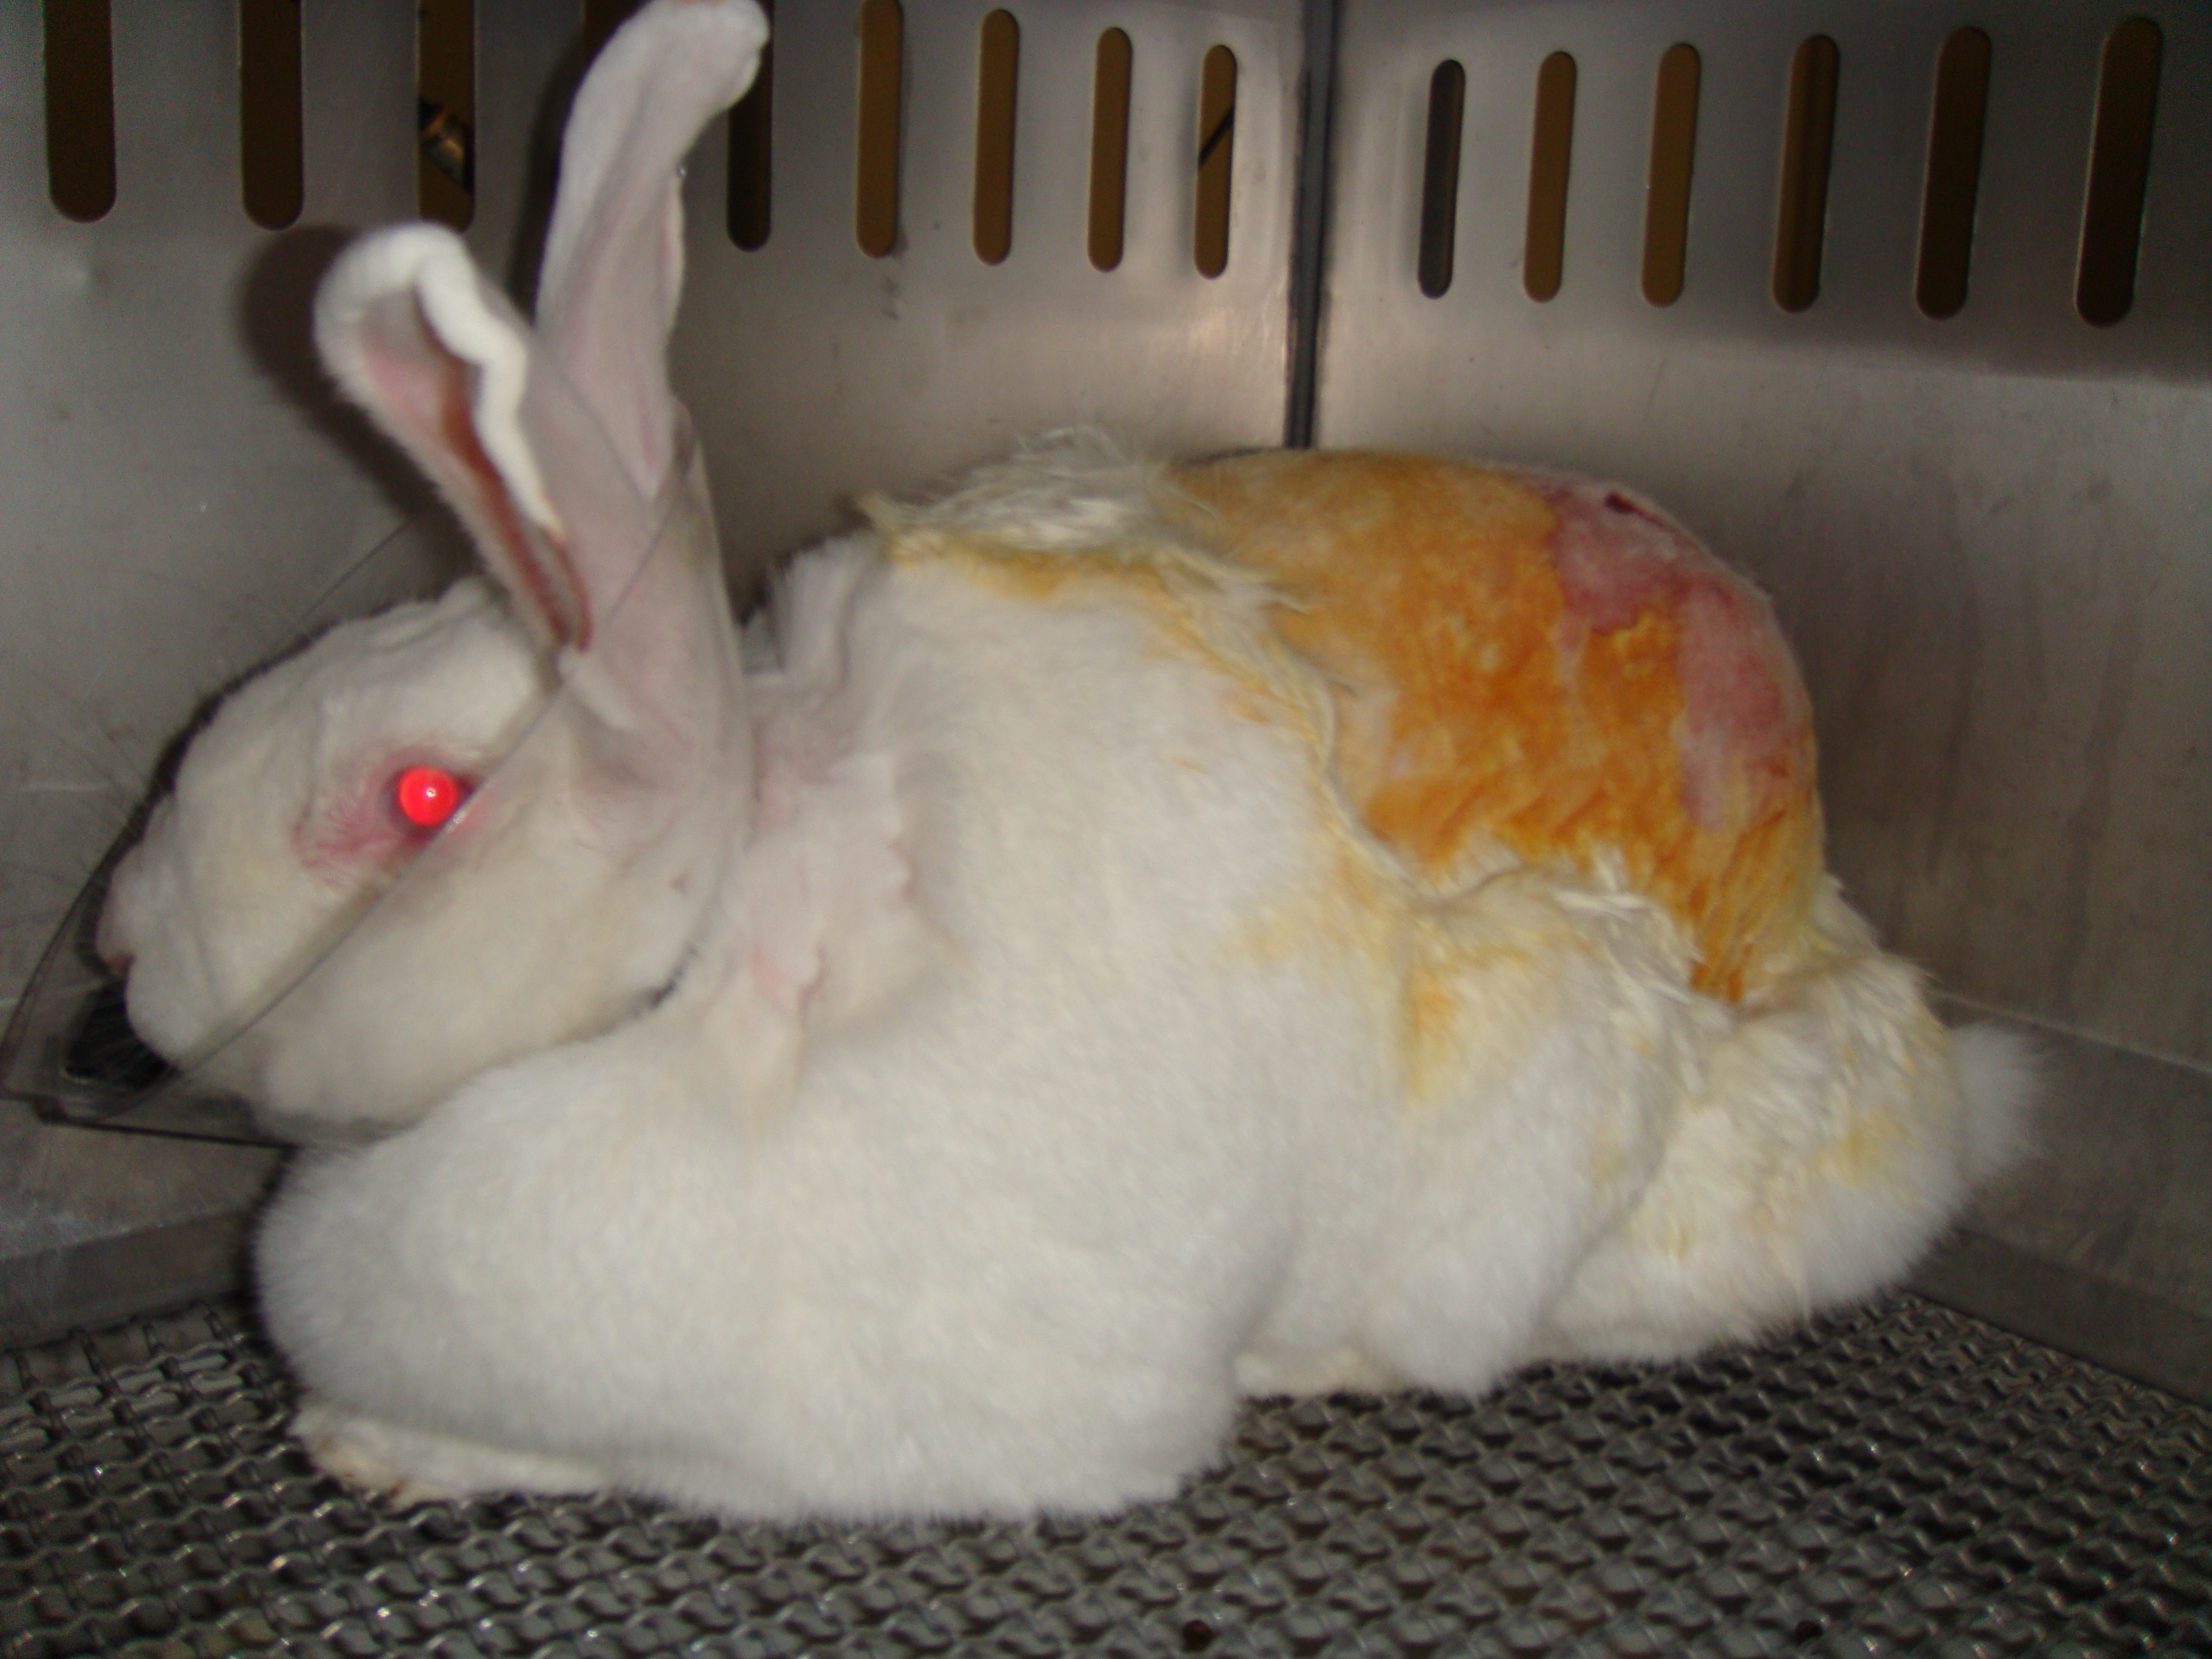 rabbit with a shaved back and wearing an Elizabethan collar in a cage